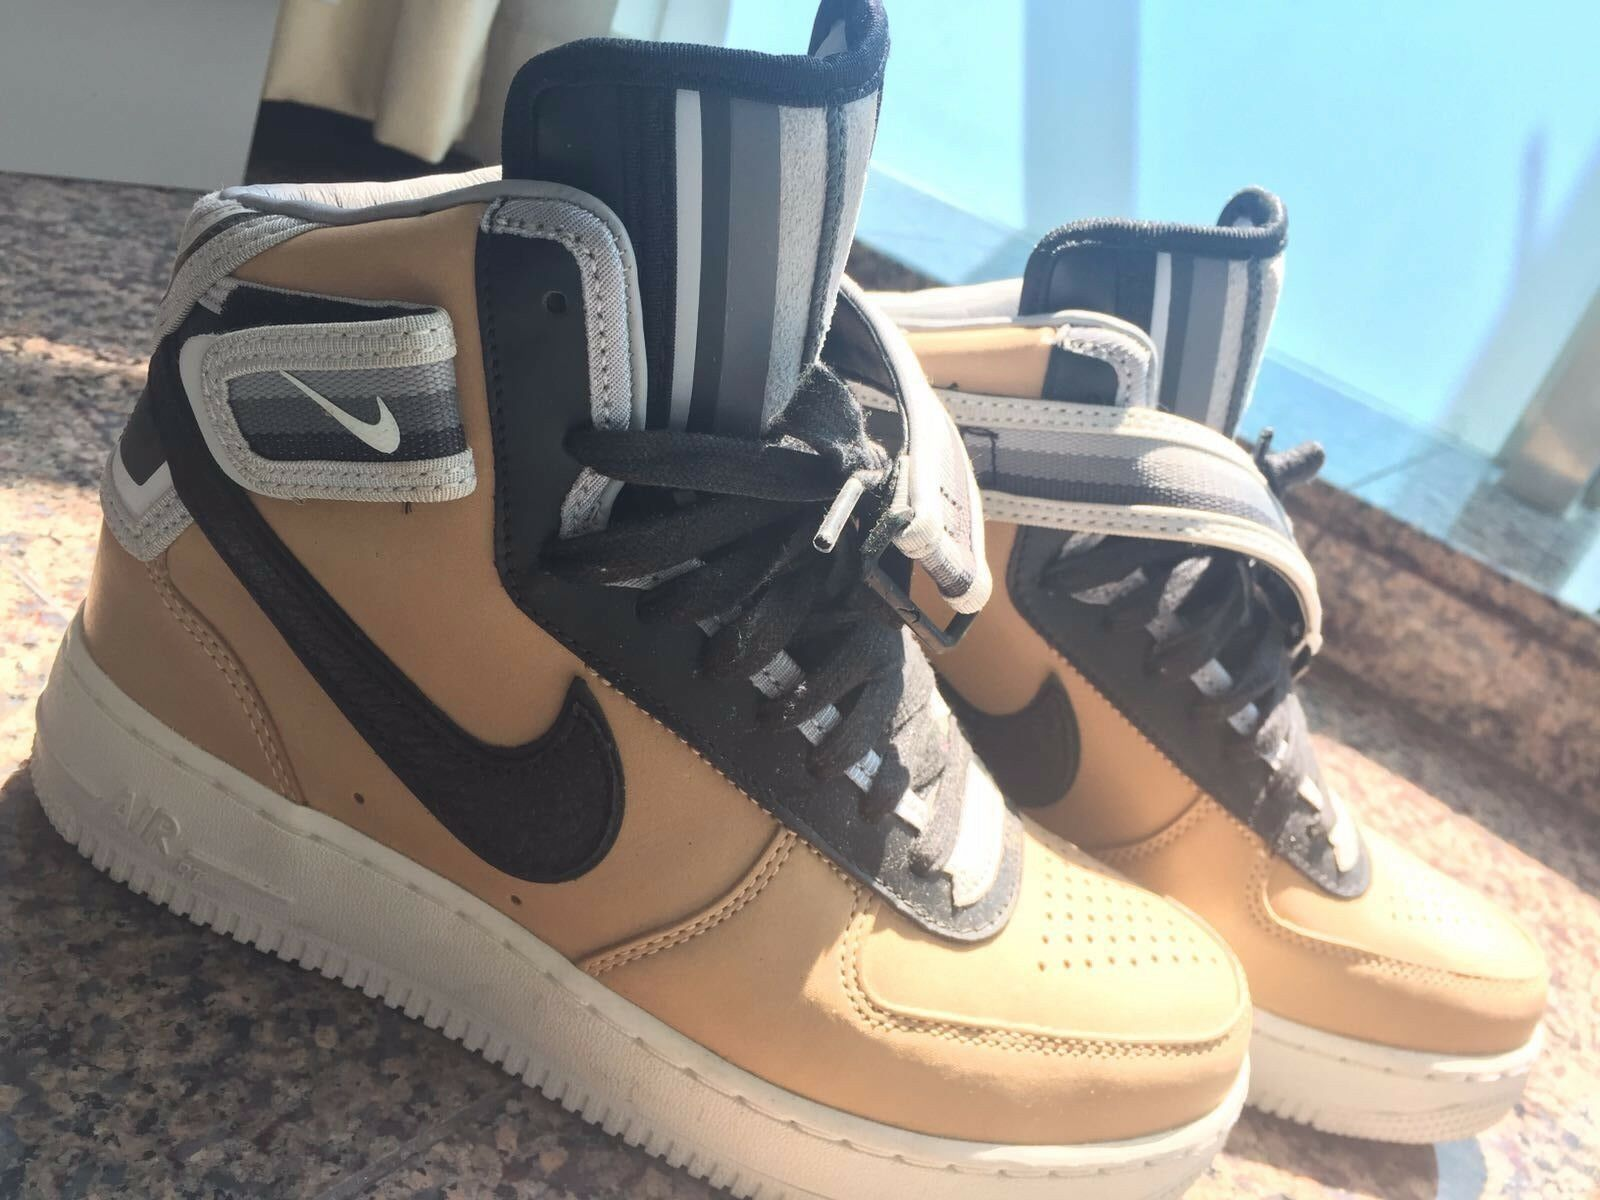 NIKE AIR FORCE TISCI 1 MID VACHETTA TAN RT RICCARDO TISCI FORCE R.T. 677130-200 SIZE 5 92d8d7